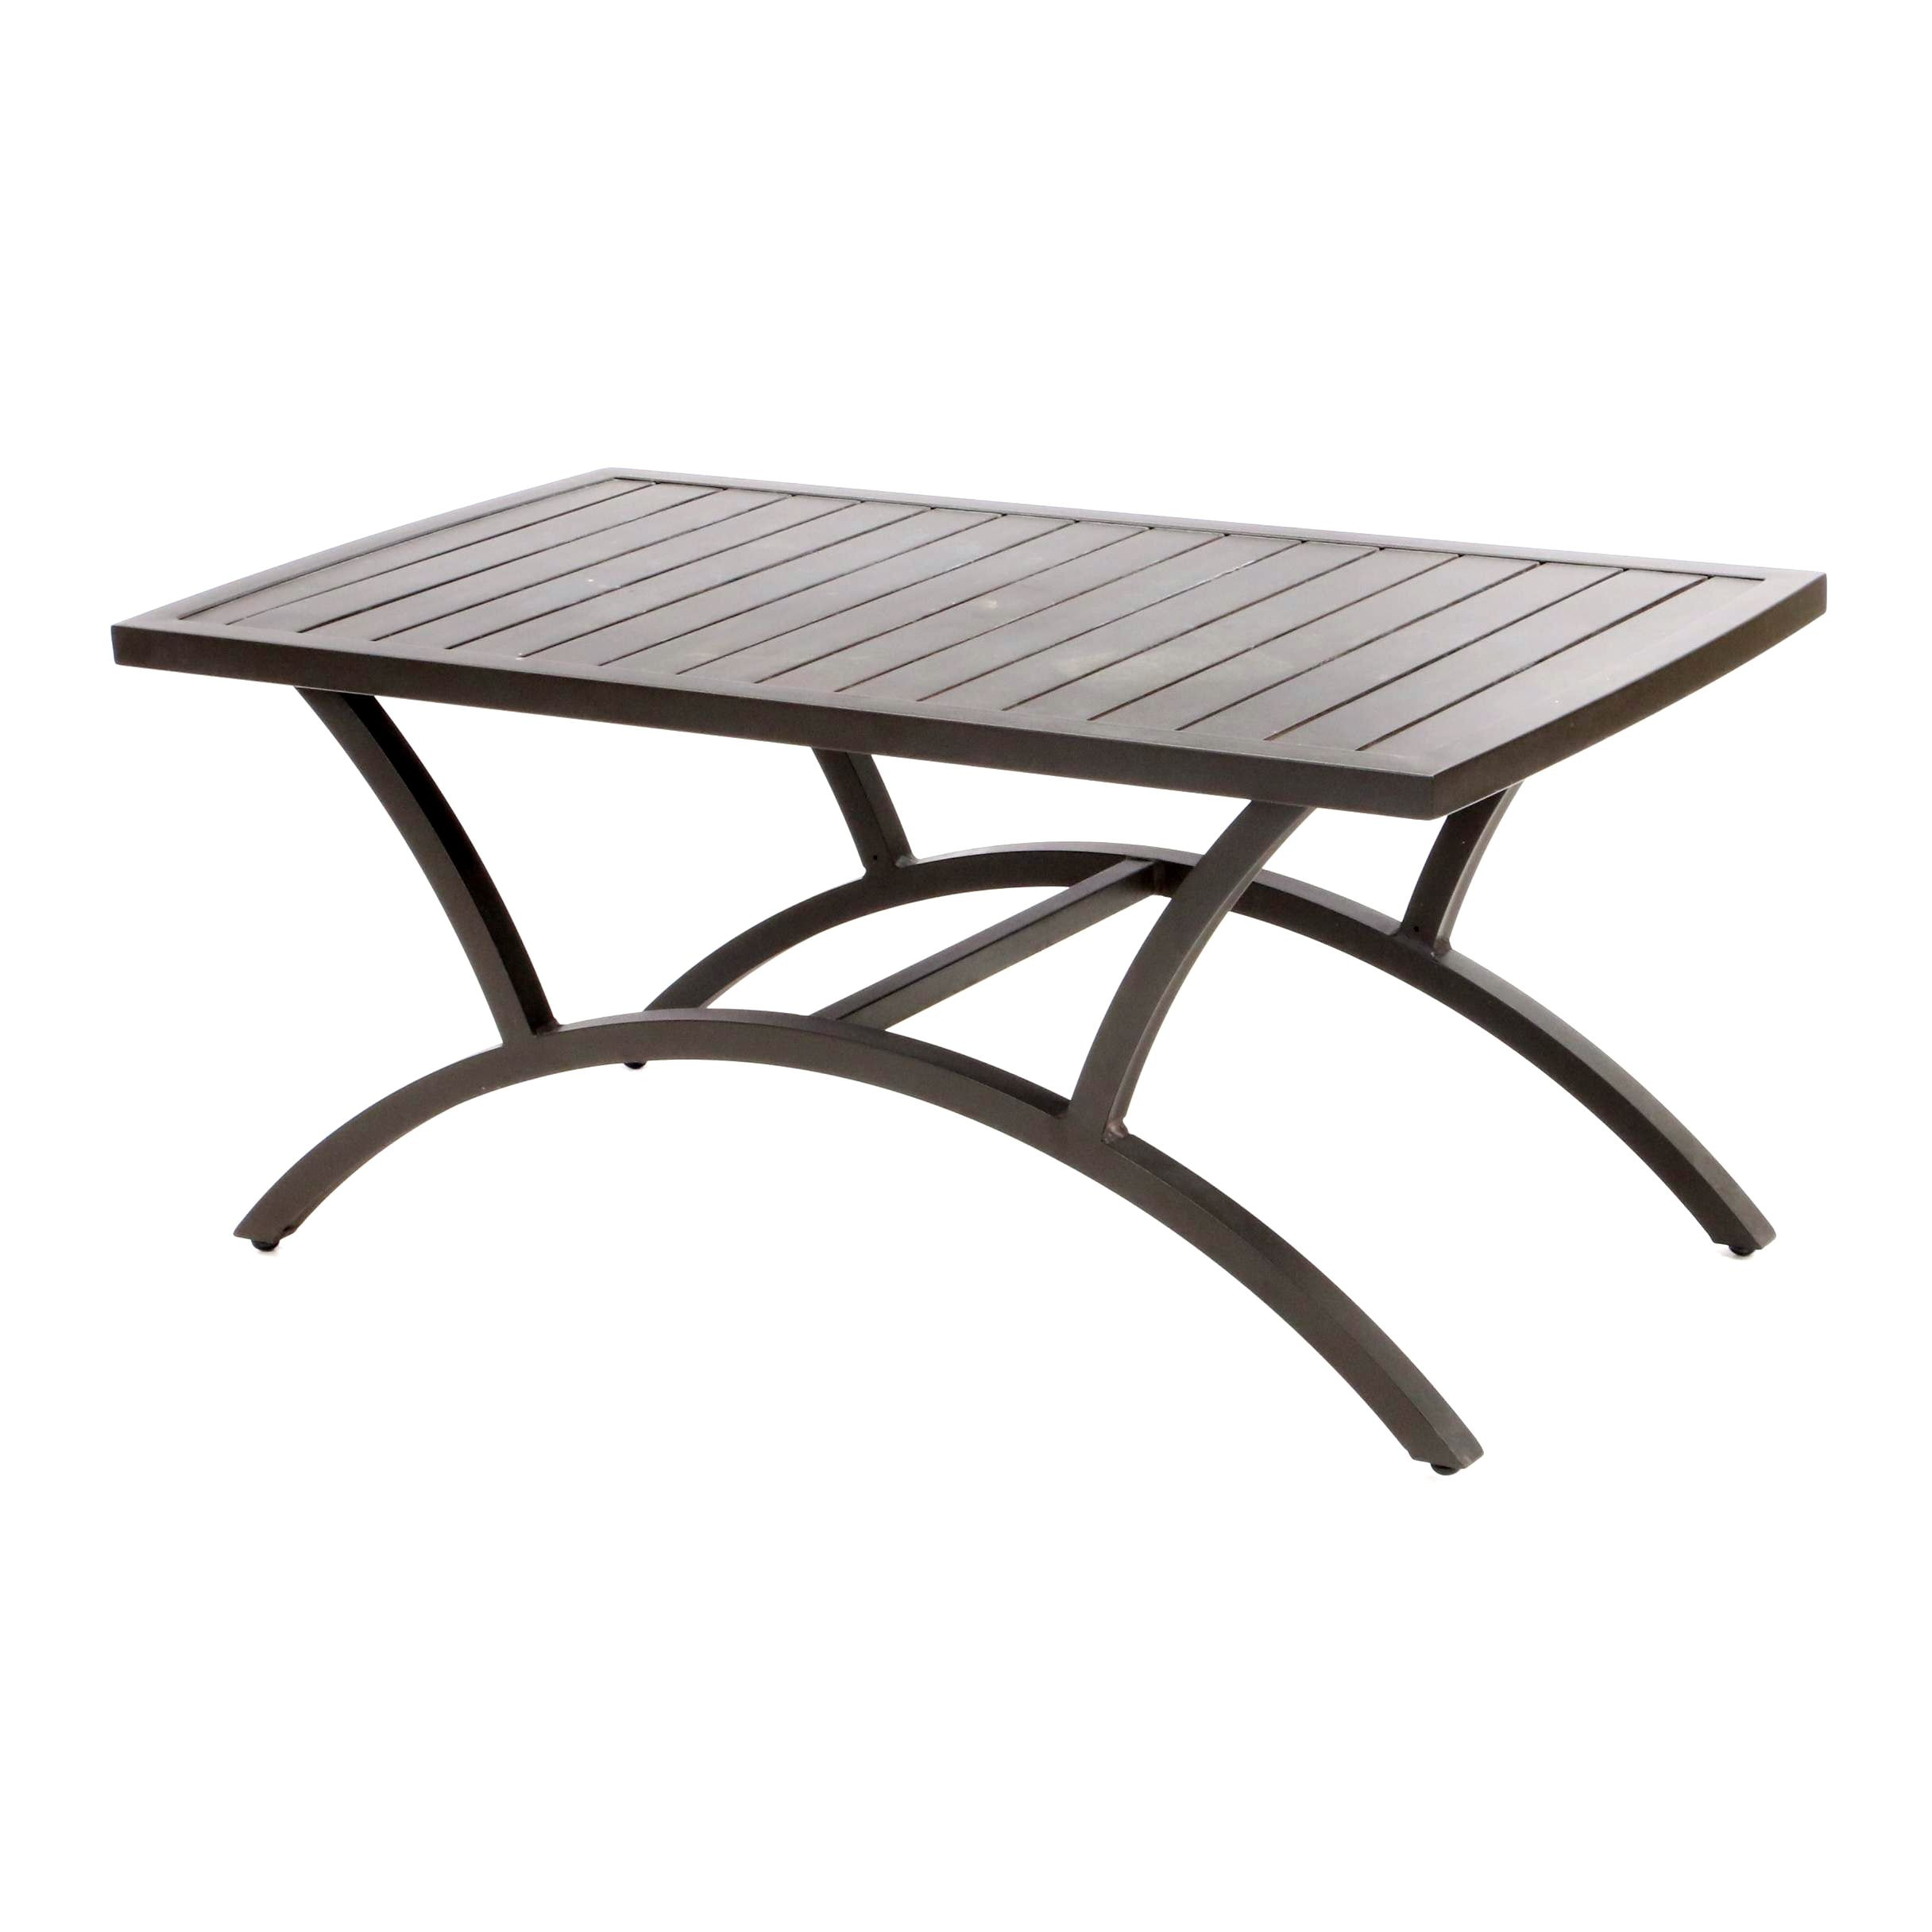 Contemporary Patio Coffee Table